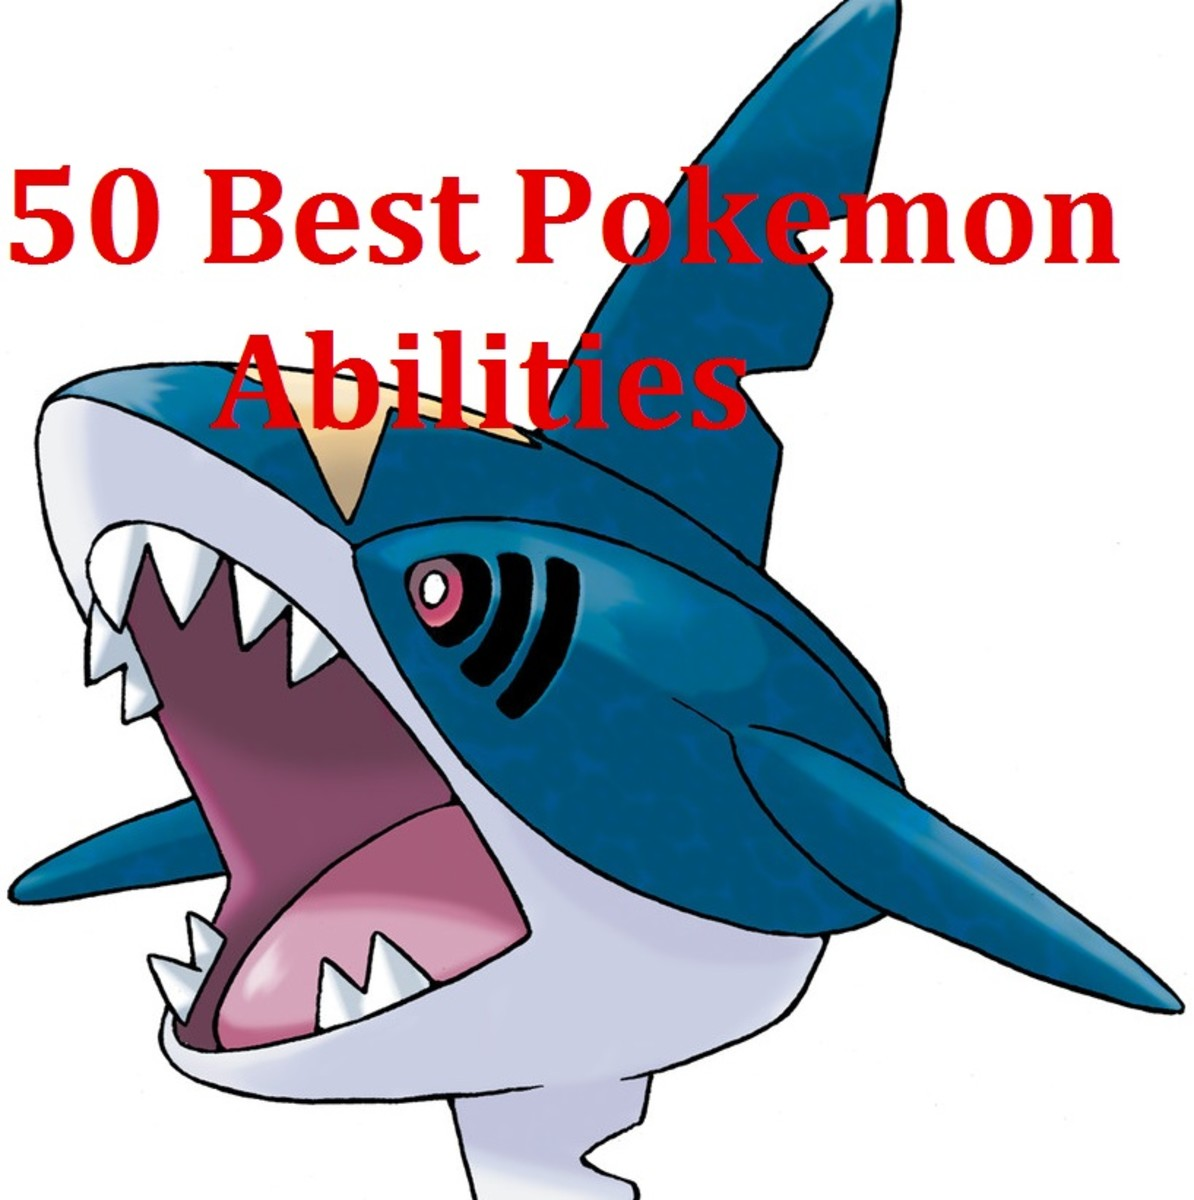 Top 50 Best Pokémon Abilities